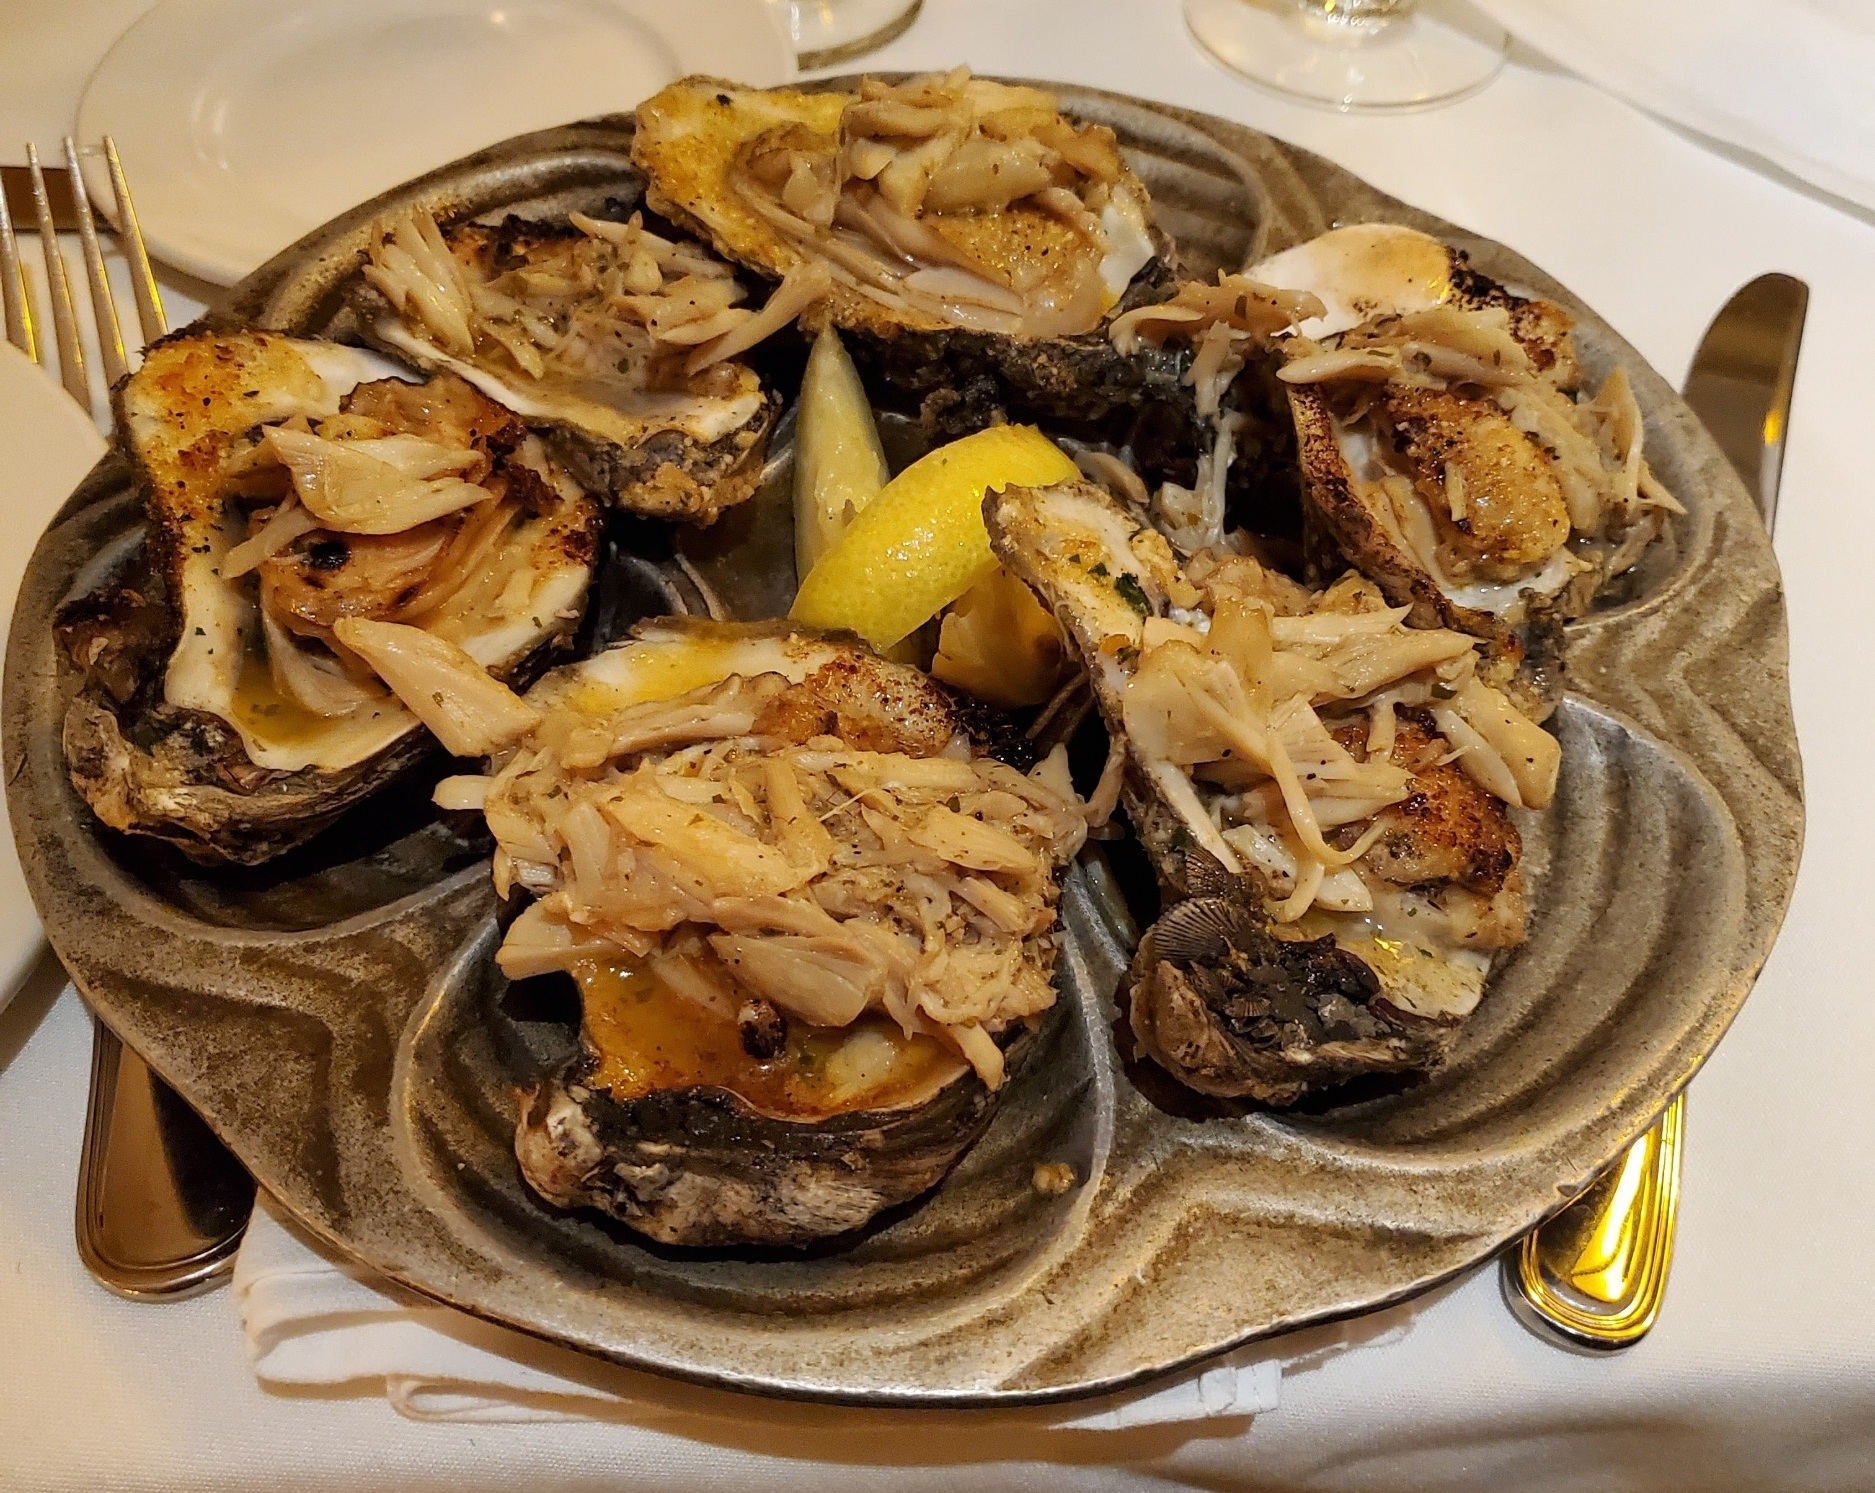 Oysters on the half shell with crab meat at Bourbon House